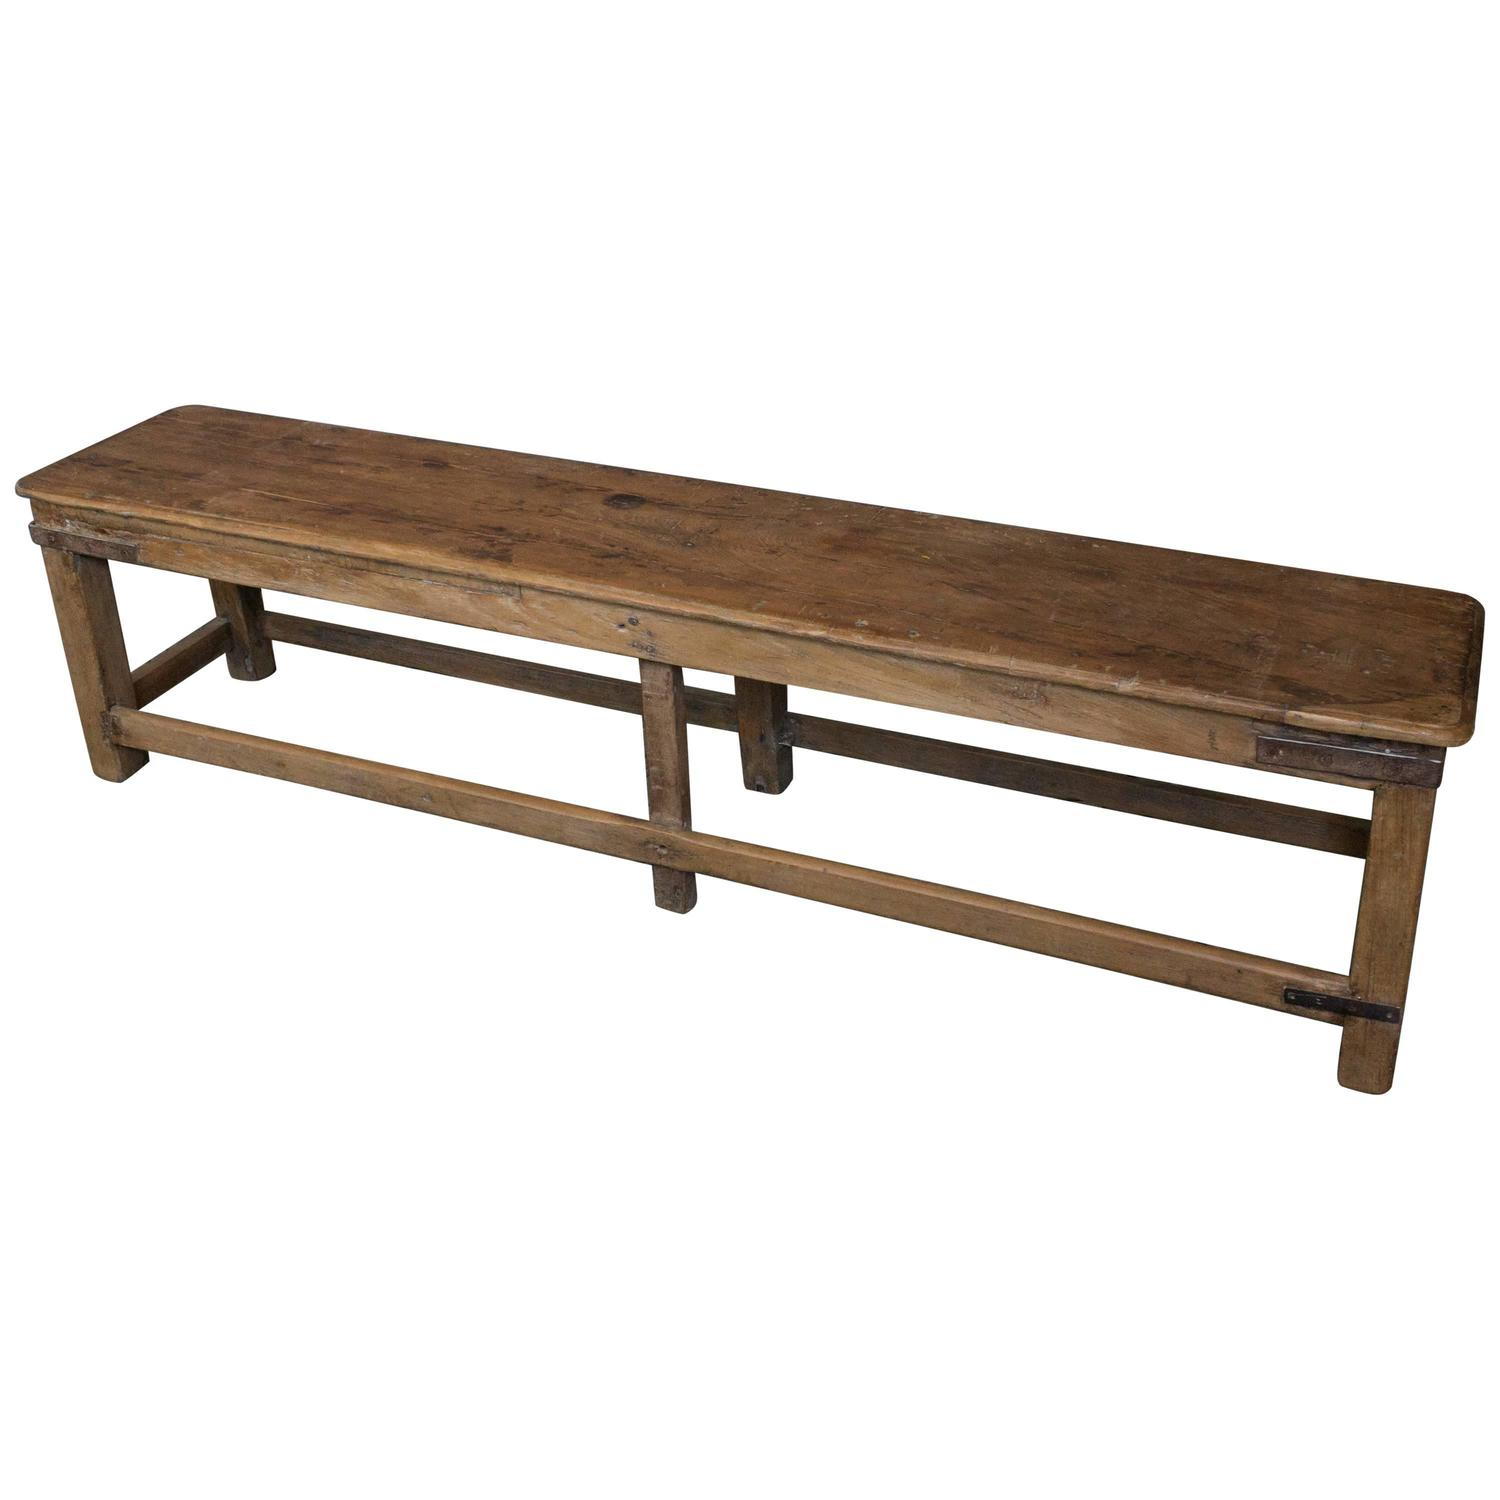 French Industrial Coffee Table: French Rustic Early 20th C. Wooden Industrial Bench At 1stdibs